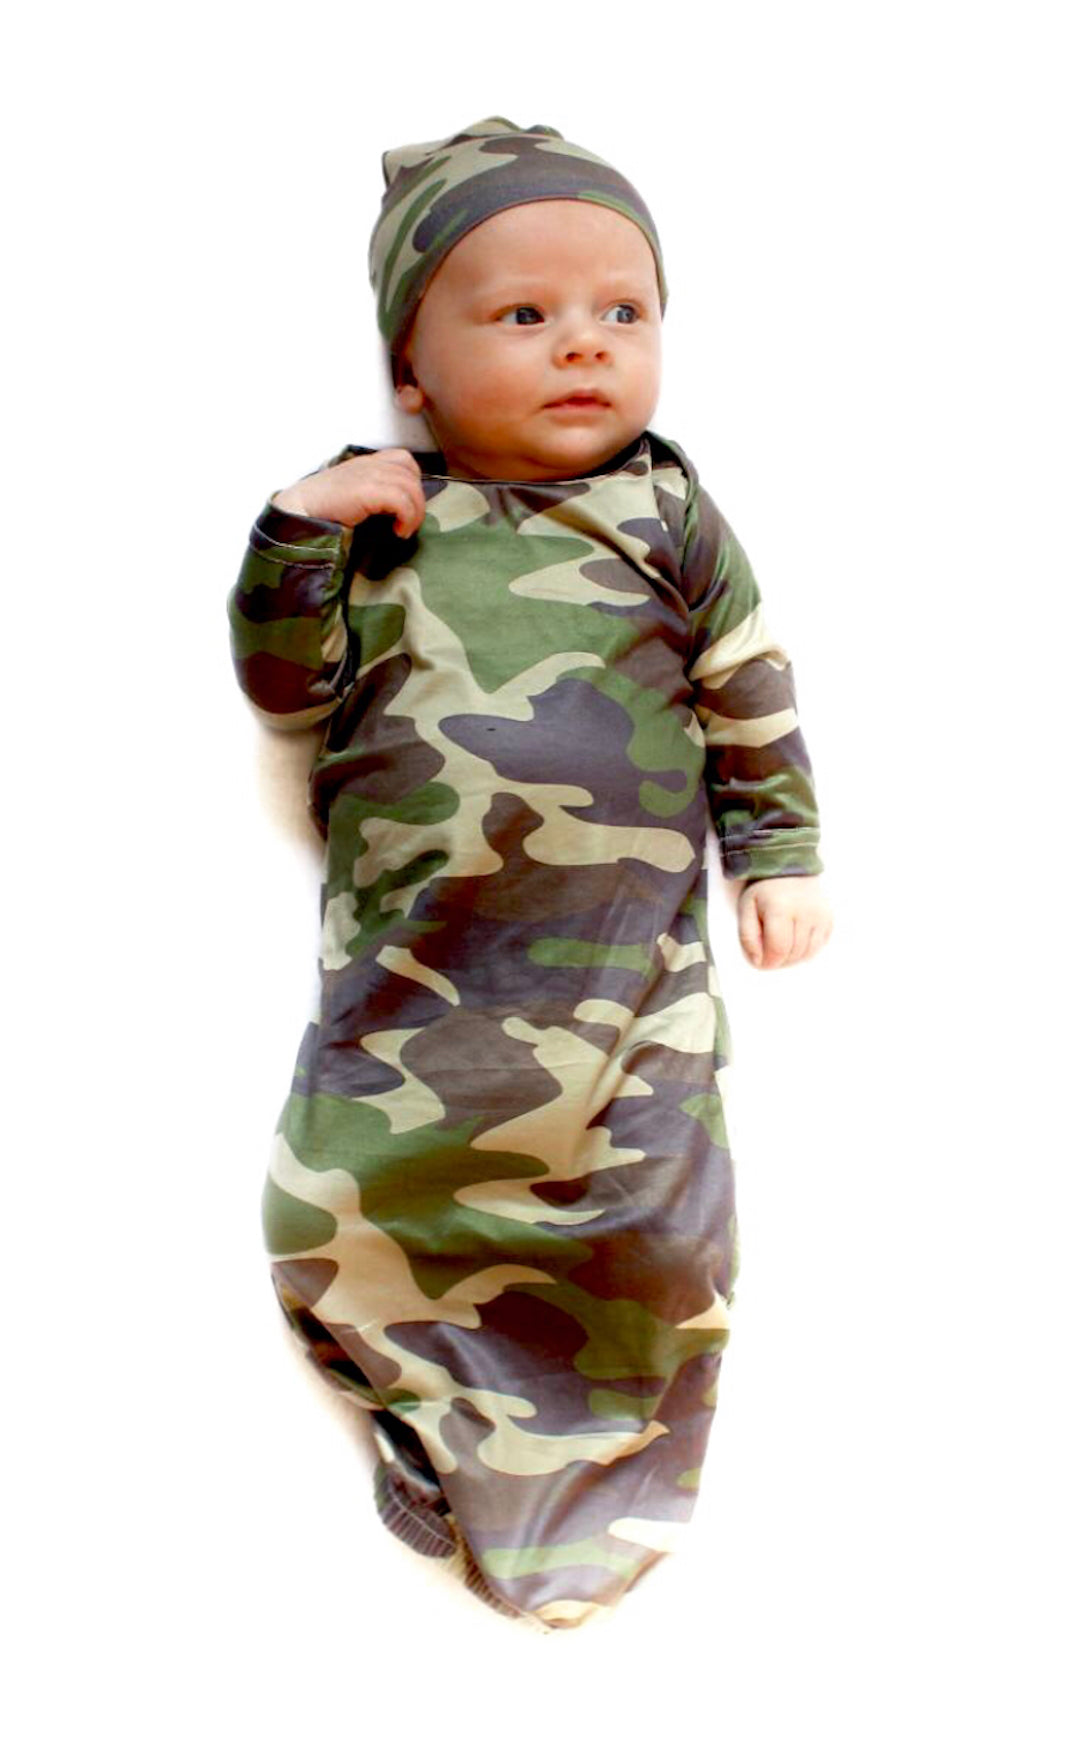 CAMO BABY GOWN - 0-3 MONTHS